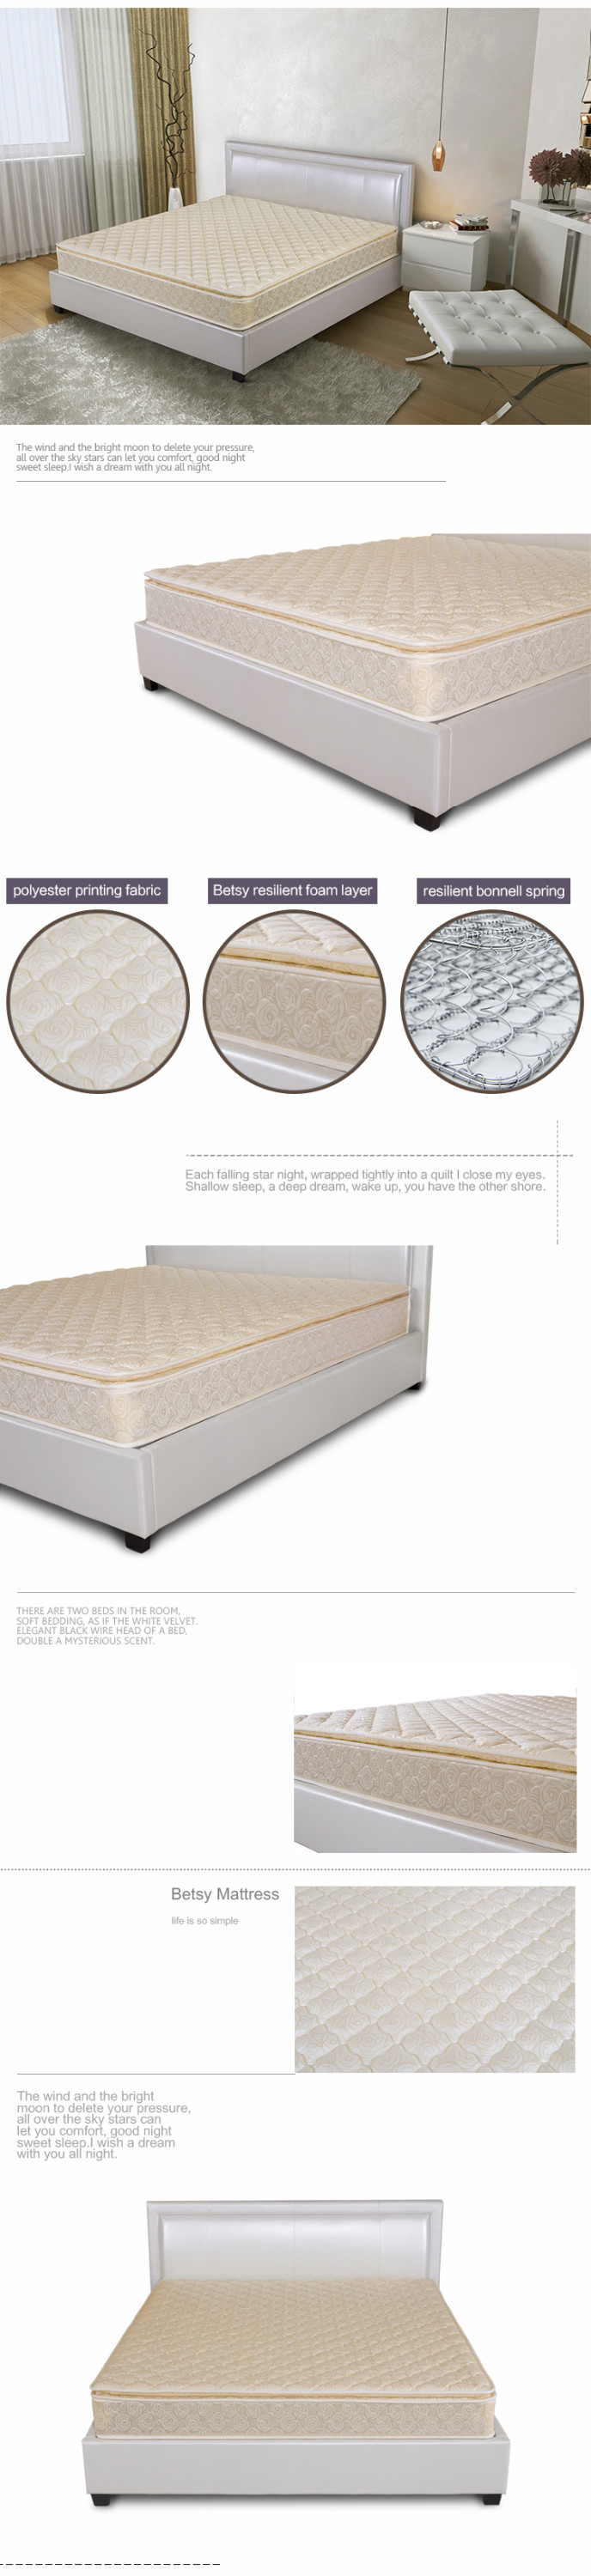 Luxurious Jad And Palm Replacement Diamond Mattress Prices With